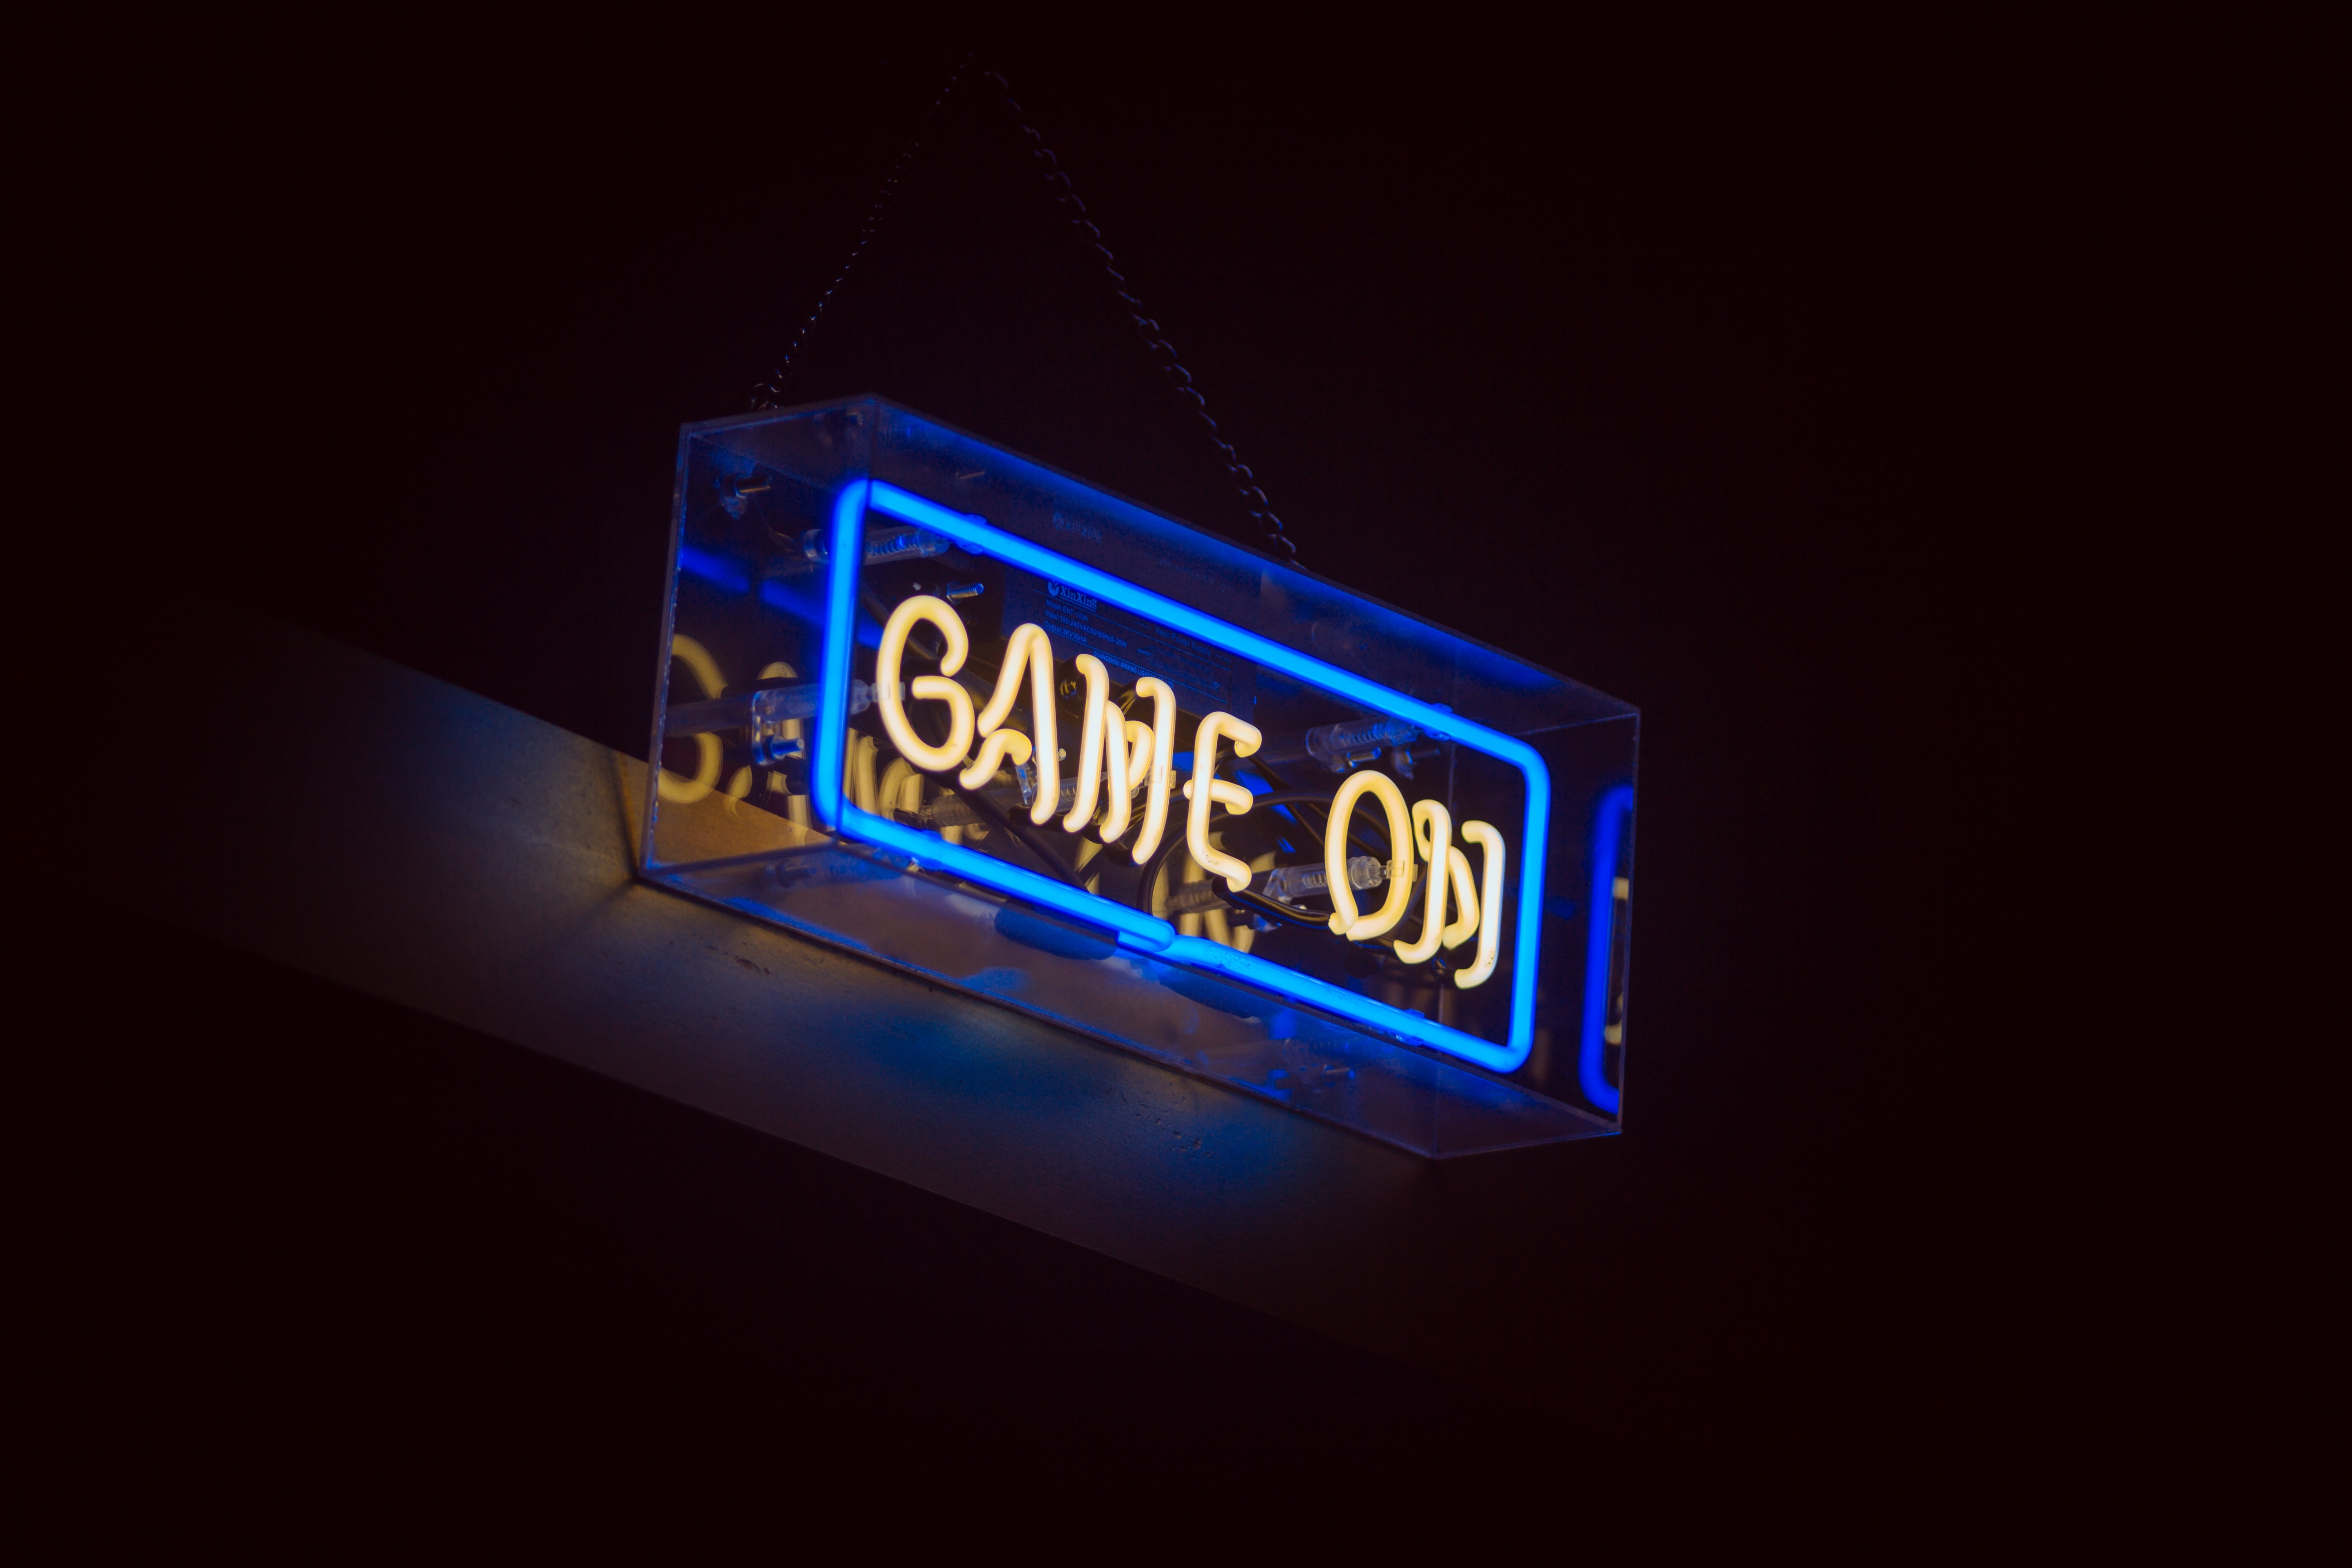 Game on neon signage turned on